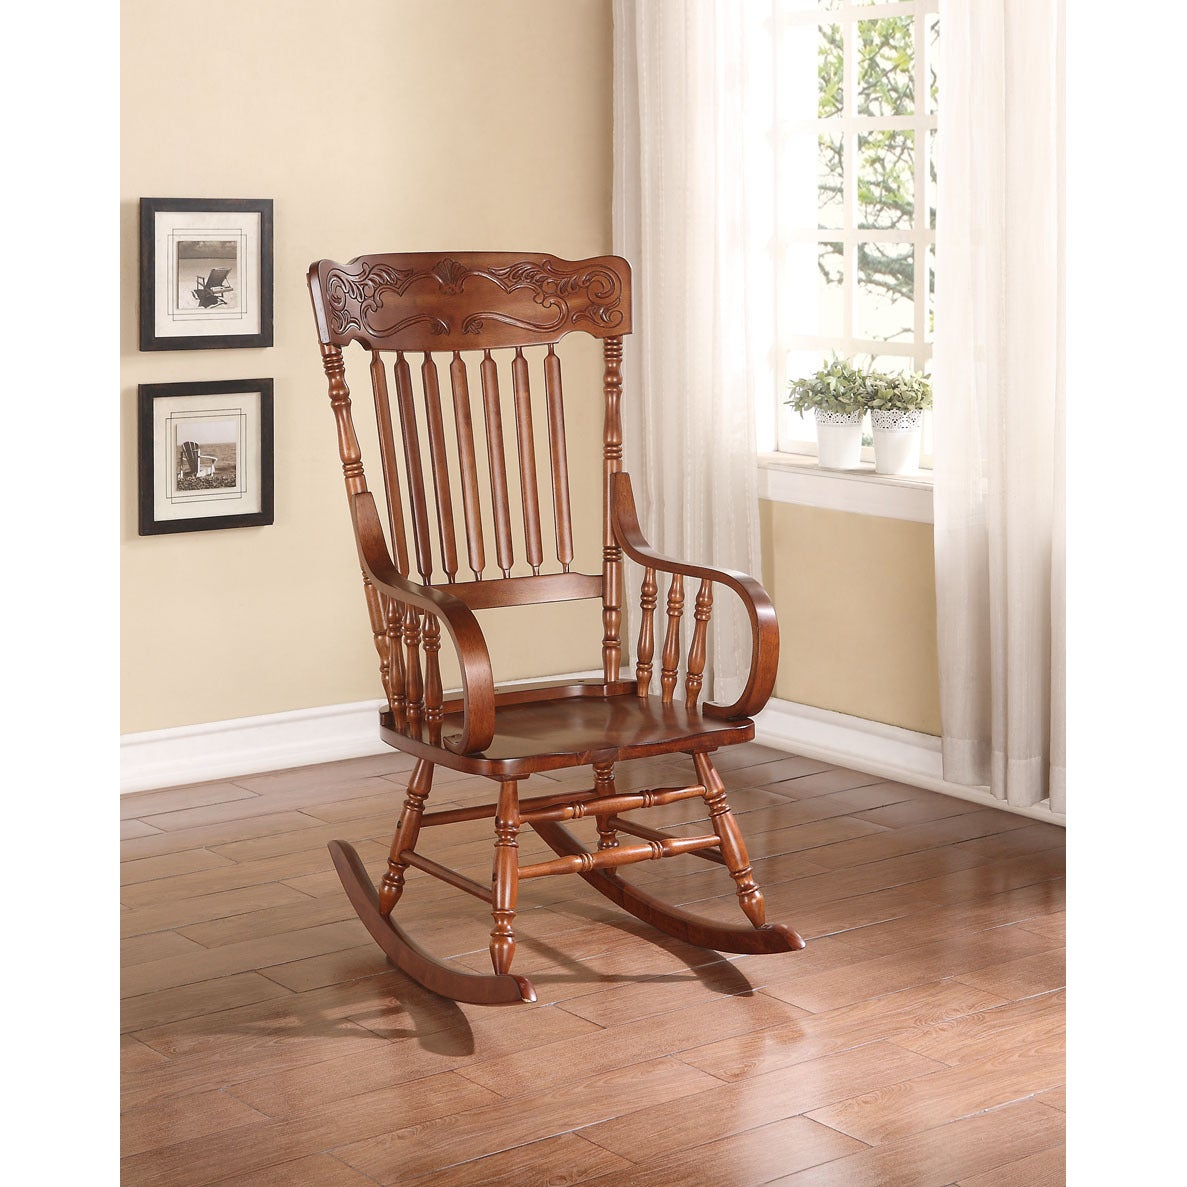 Kloris Tobacco Rocking Chair Pertaining To Tobacco Rocking Chairs (#12 of 20)